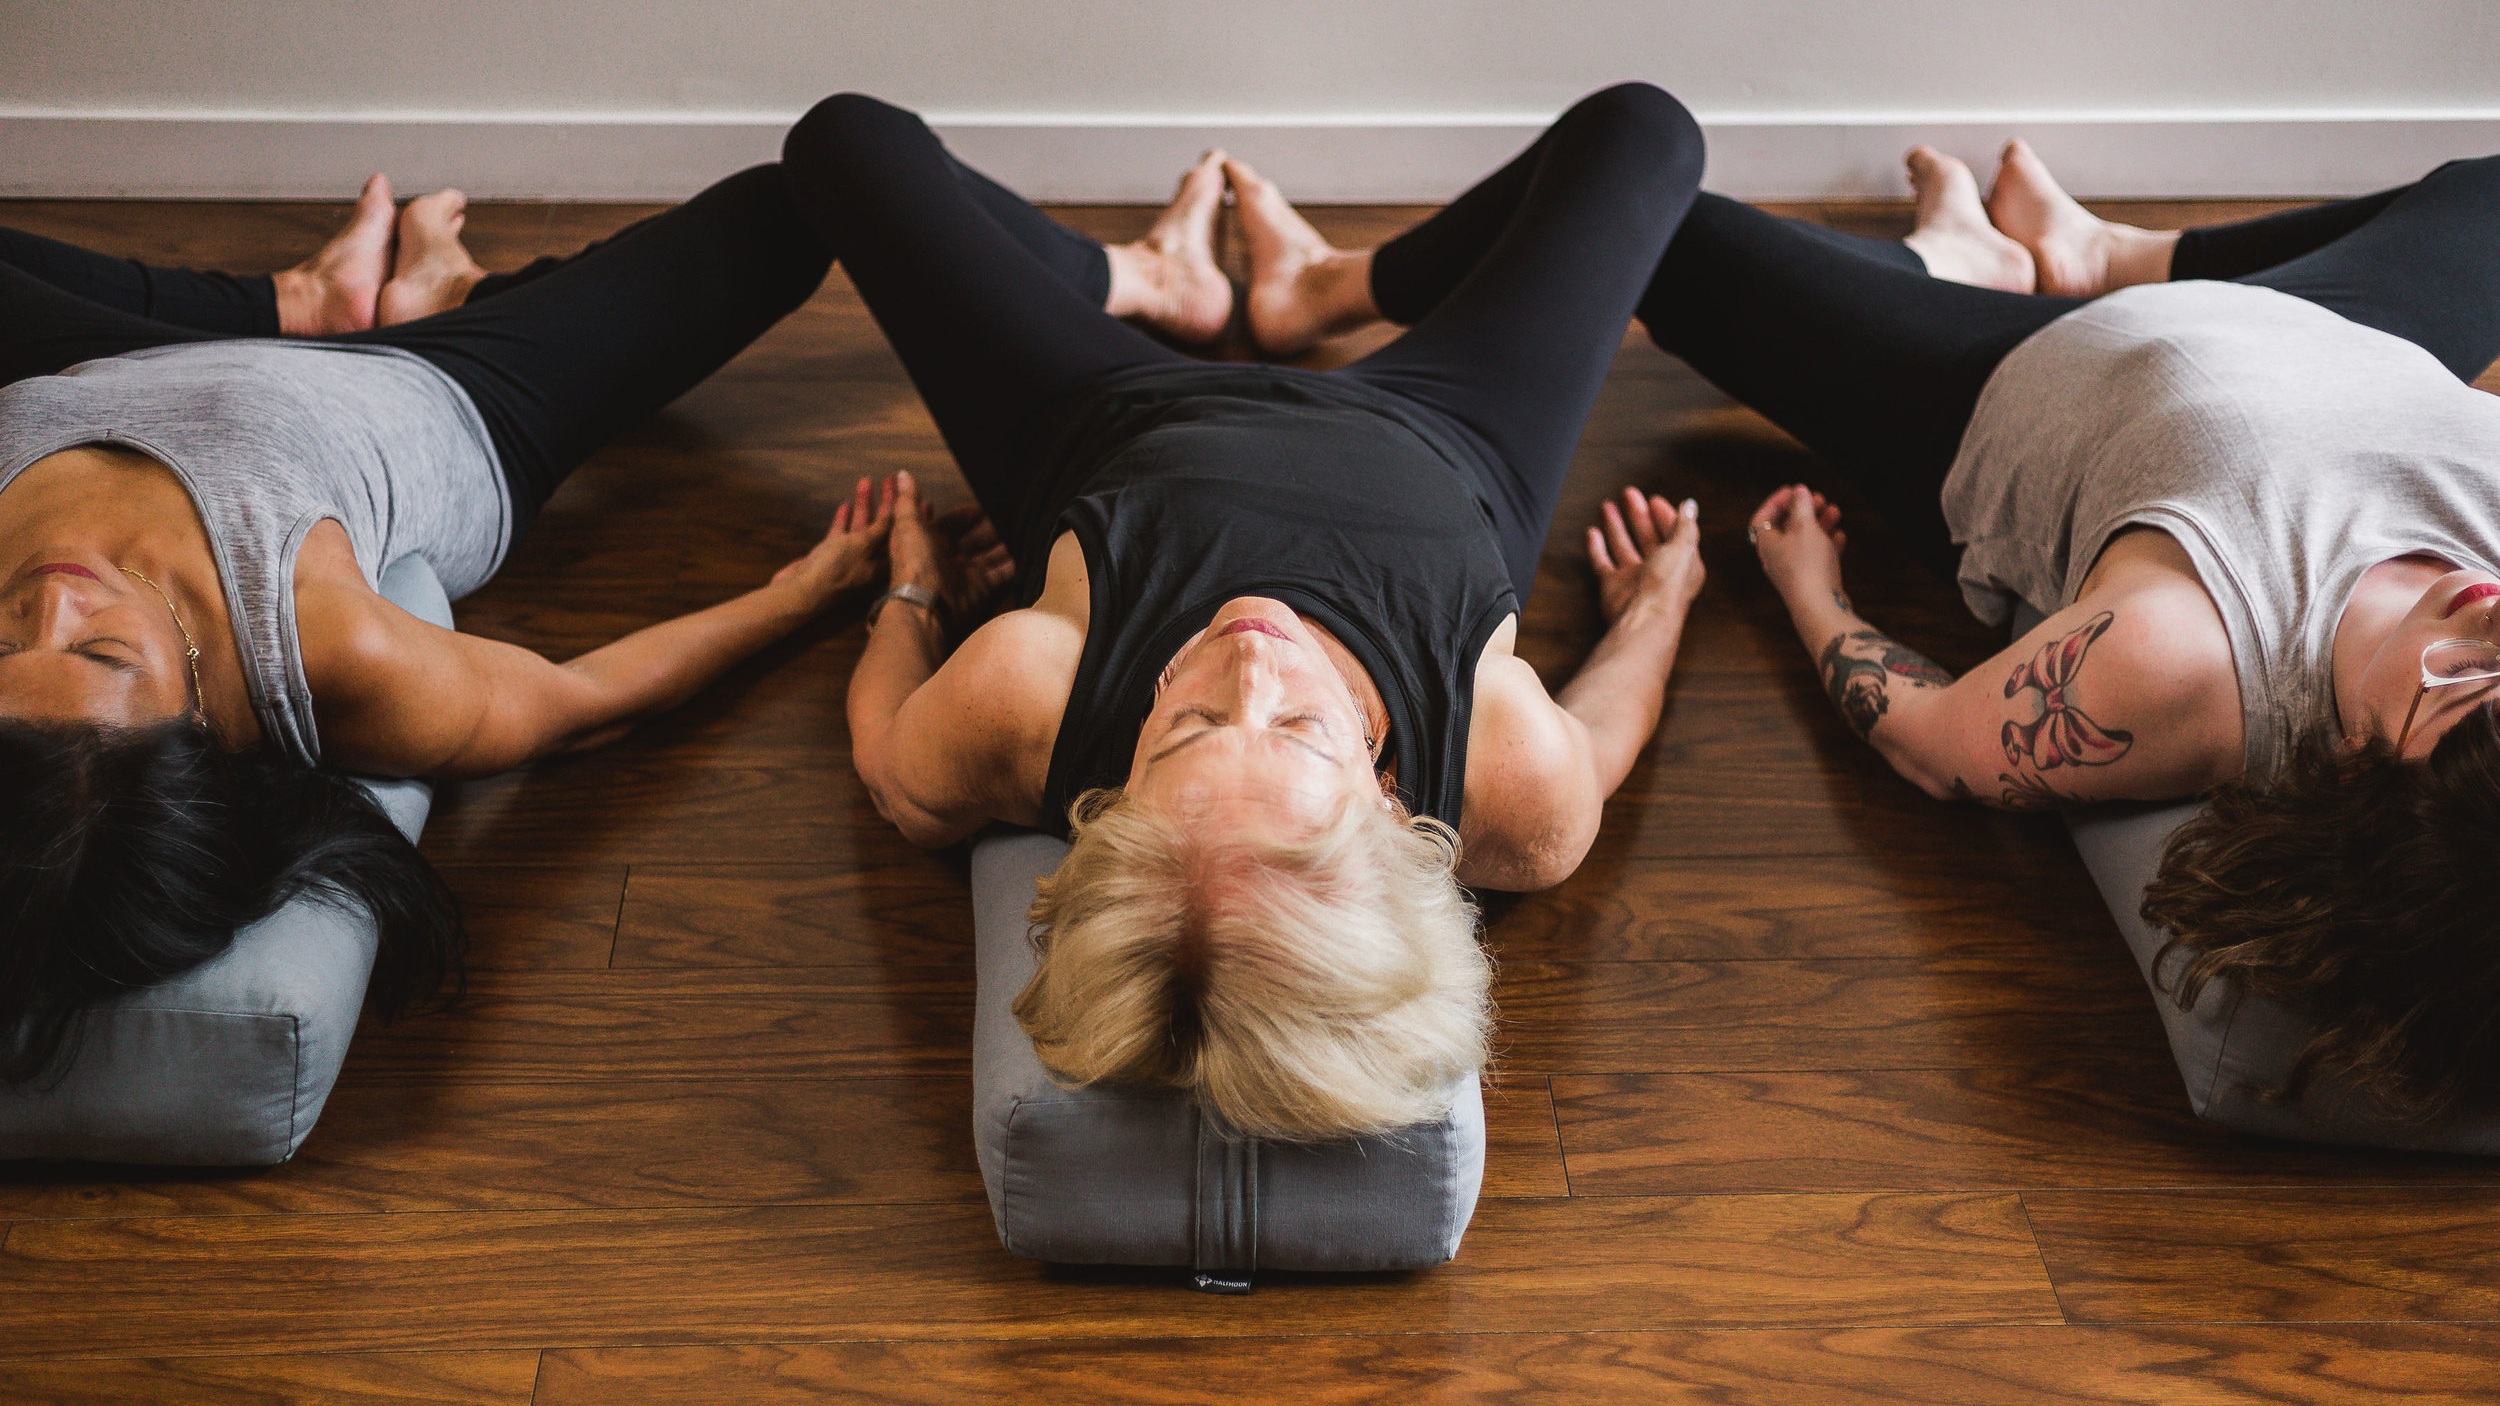 Ready to start? - Try our introductory offer - $59.99 for a full 30 days of unlimited yoga. tRY AS MANY CLASSES AS YOU'D LIKE WHILE SOAKING IN THE JAI YOGA experience, AND find out what it means to be CENTERED WITHIN YOUR MIND AND BODY, all for one low price. no long-term committment REQUIRED.